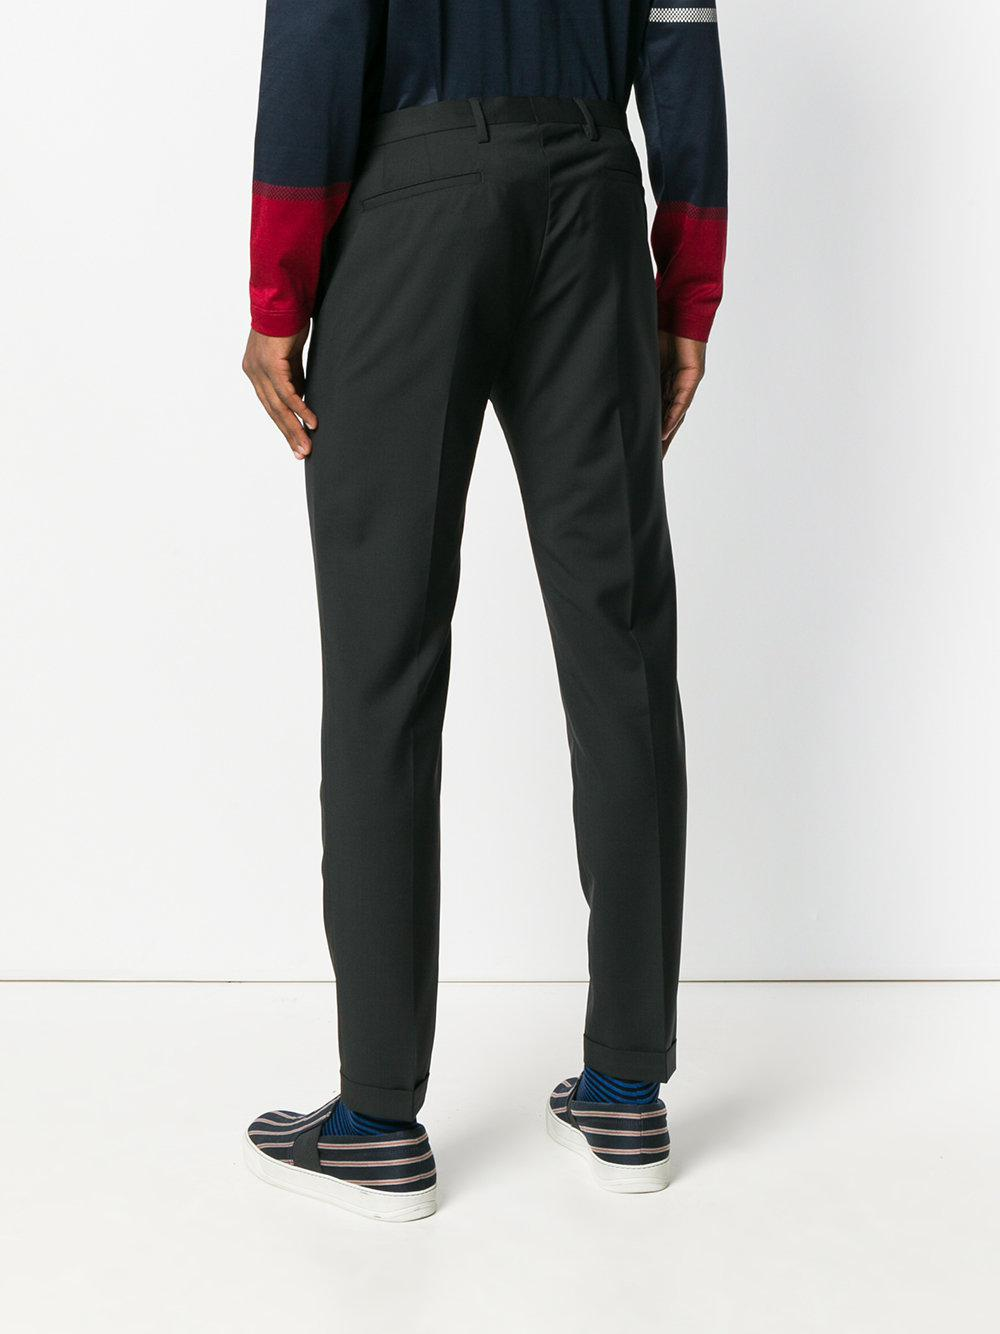 Paul Smith Black Label Wool Tapered Trousers in Black for Men